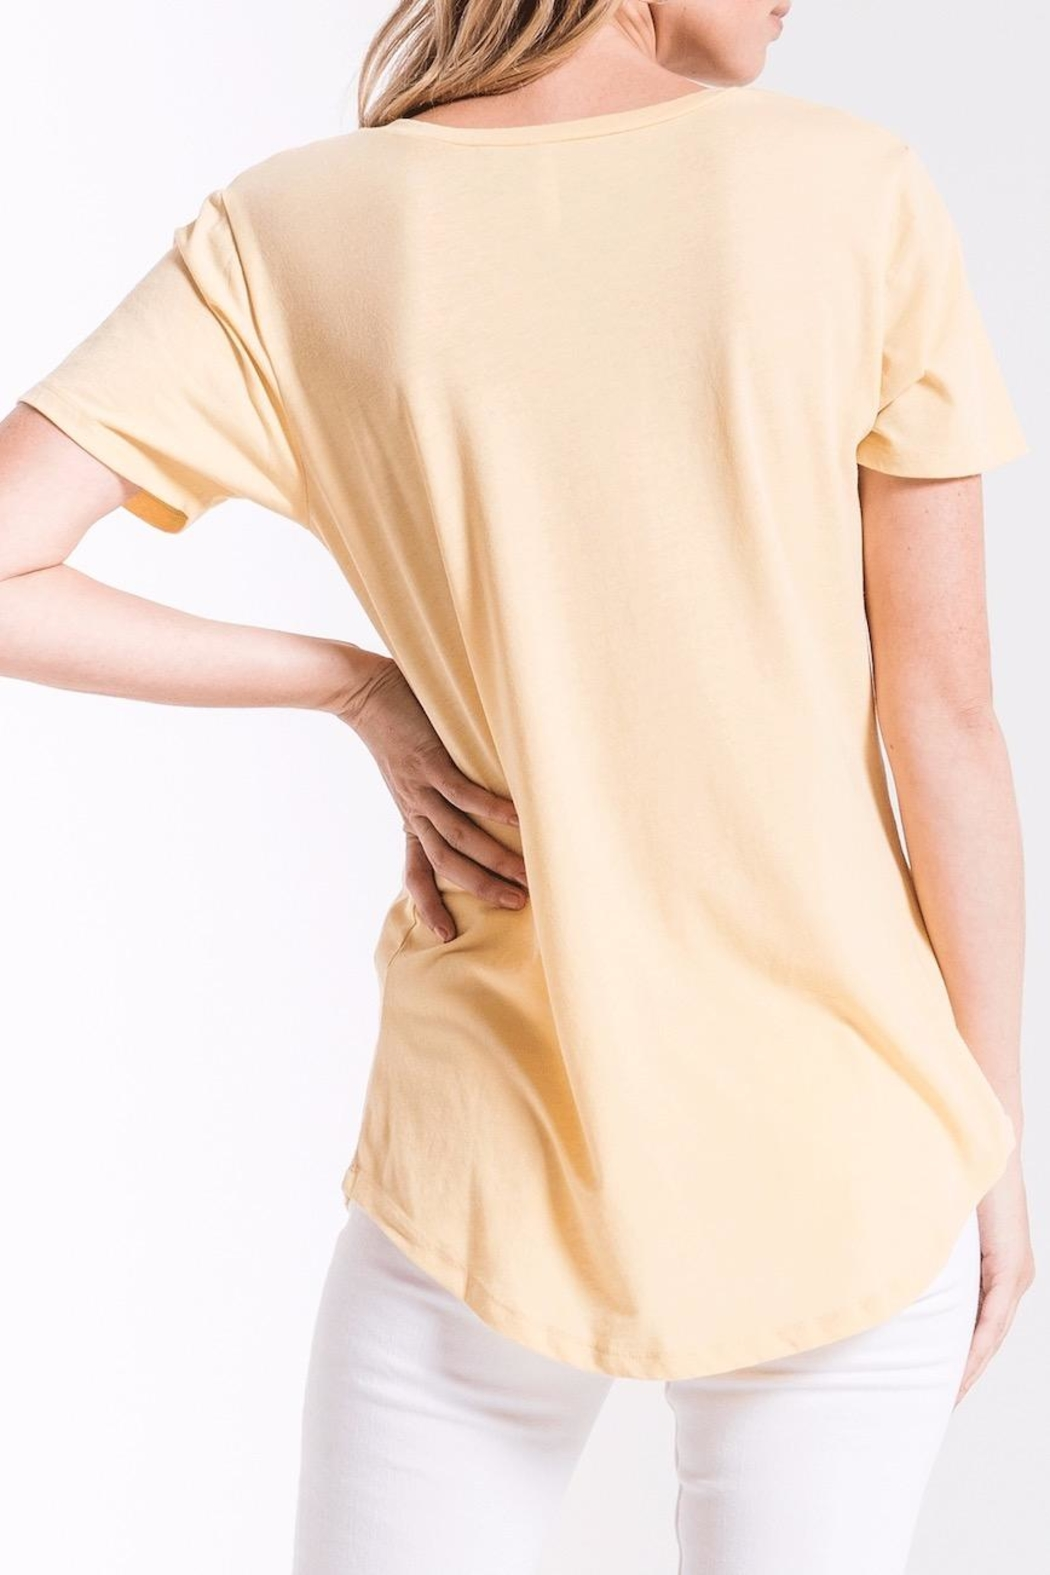 z supply Yellow Pocket Tee - Front Full Image